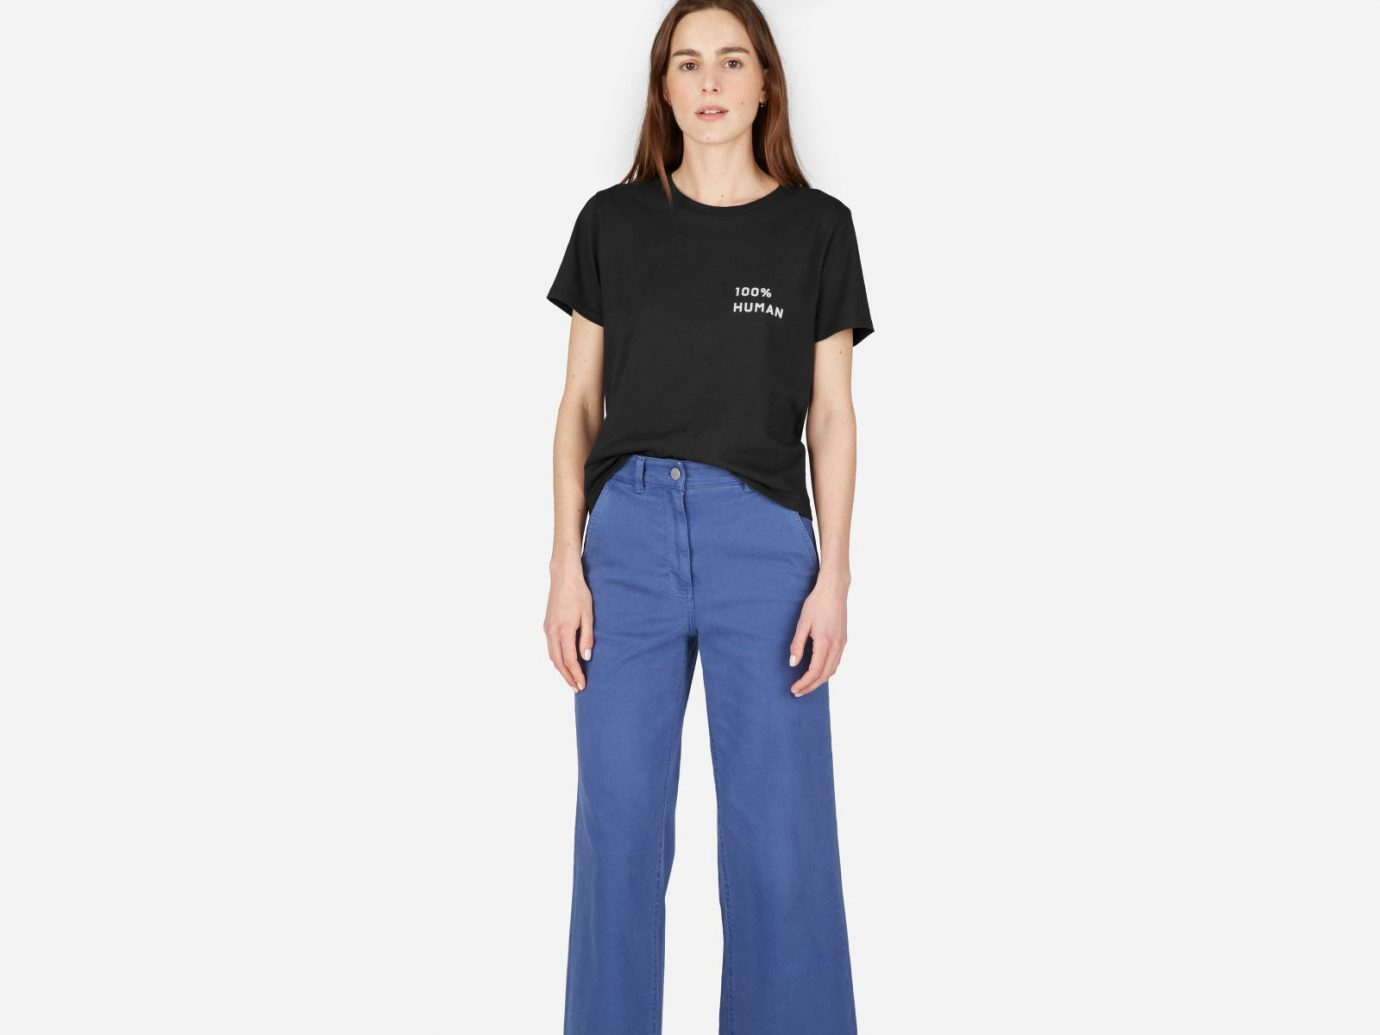 Best tee that gives back: Everlane 100% Human Woman Box-Cut Tee